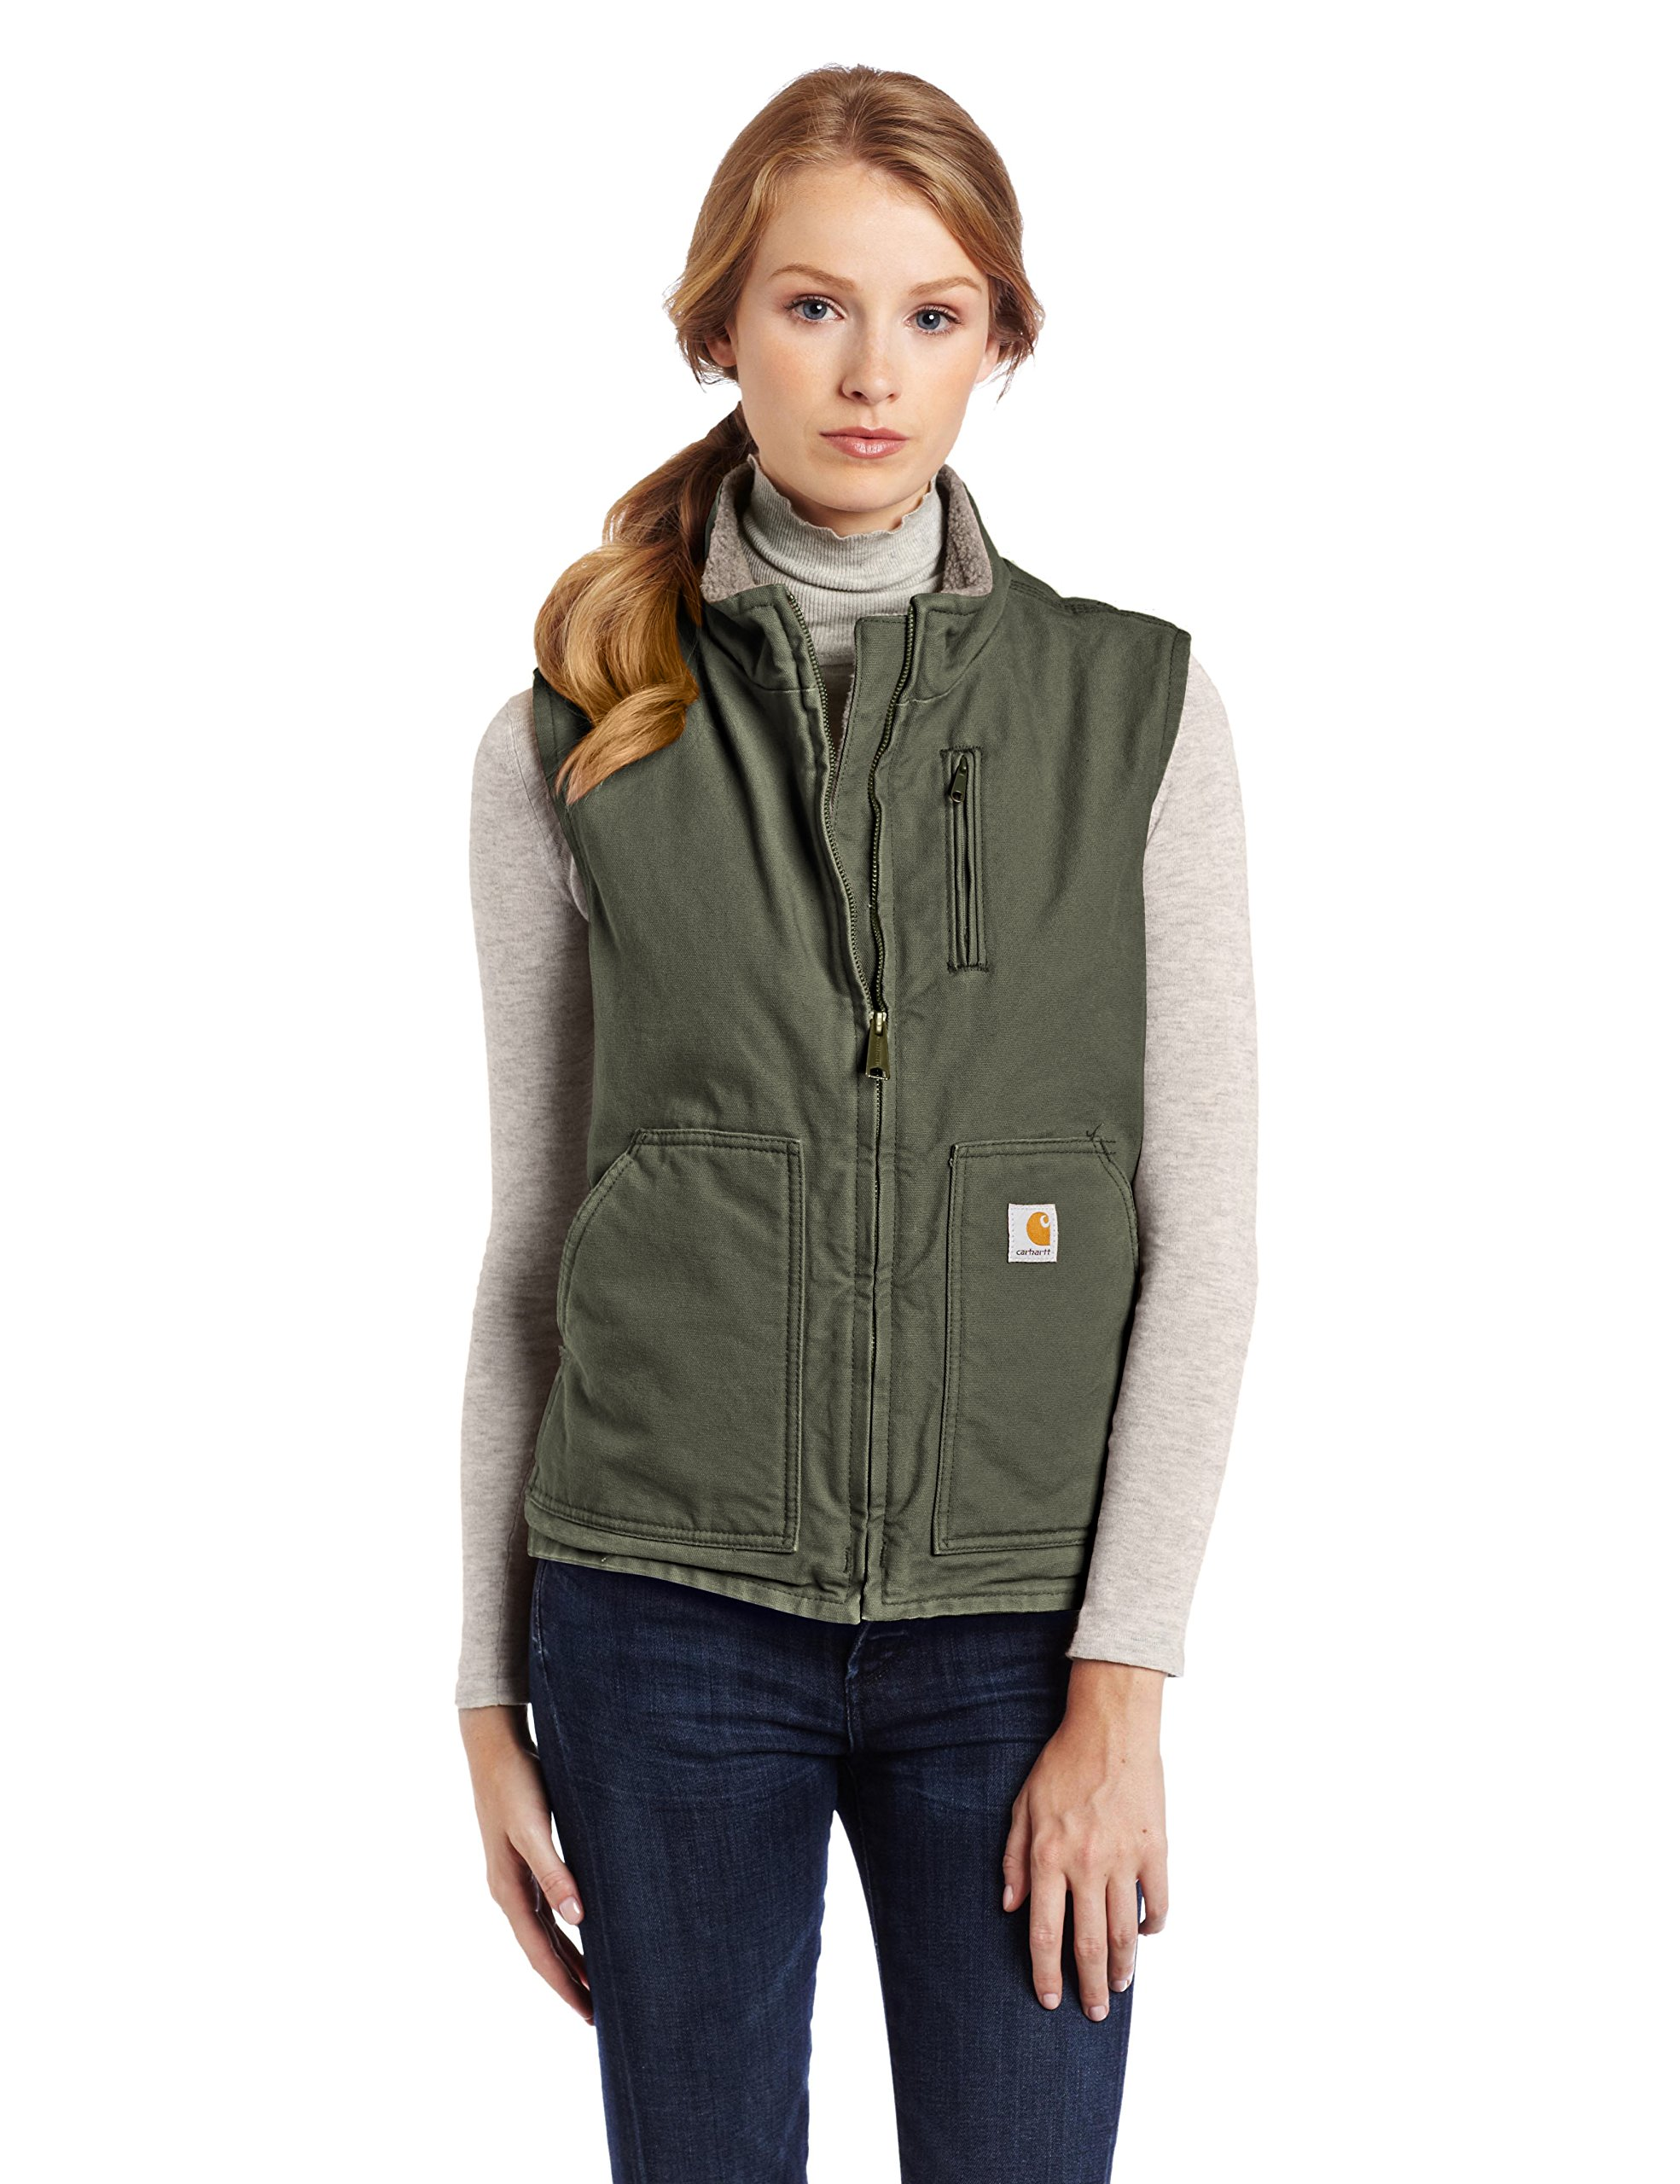 Carhartt Women's Mock Neck Sherpa Lined Vest (Regular and Plus Sizes), Woodland, X-Large by Carhartt